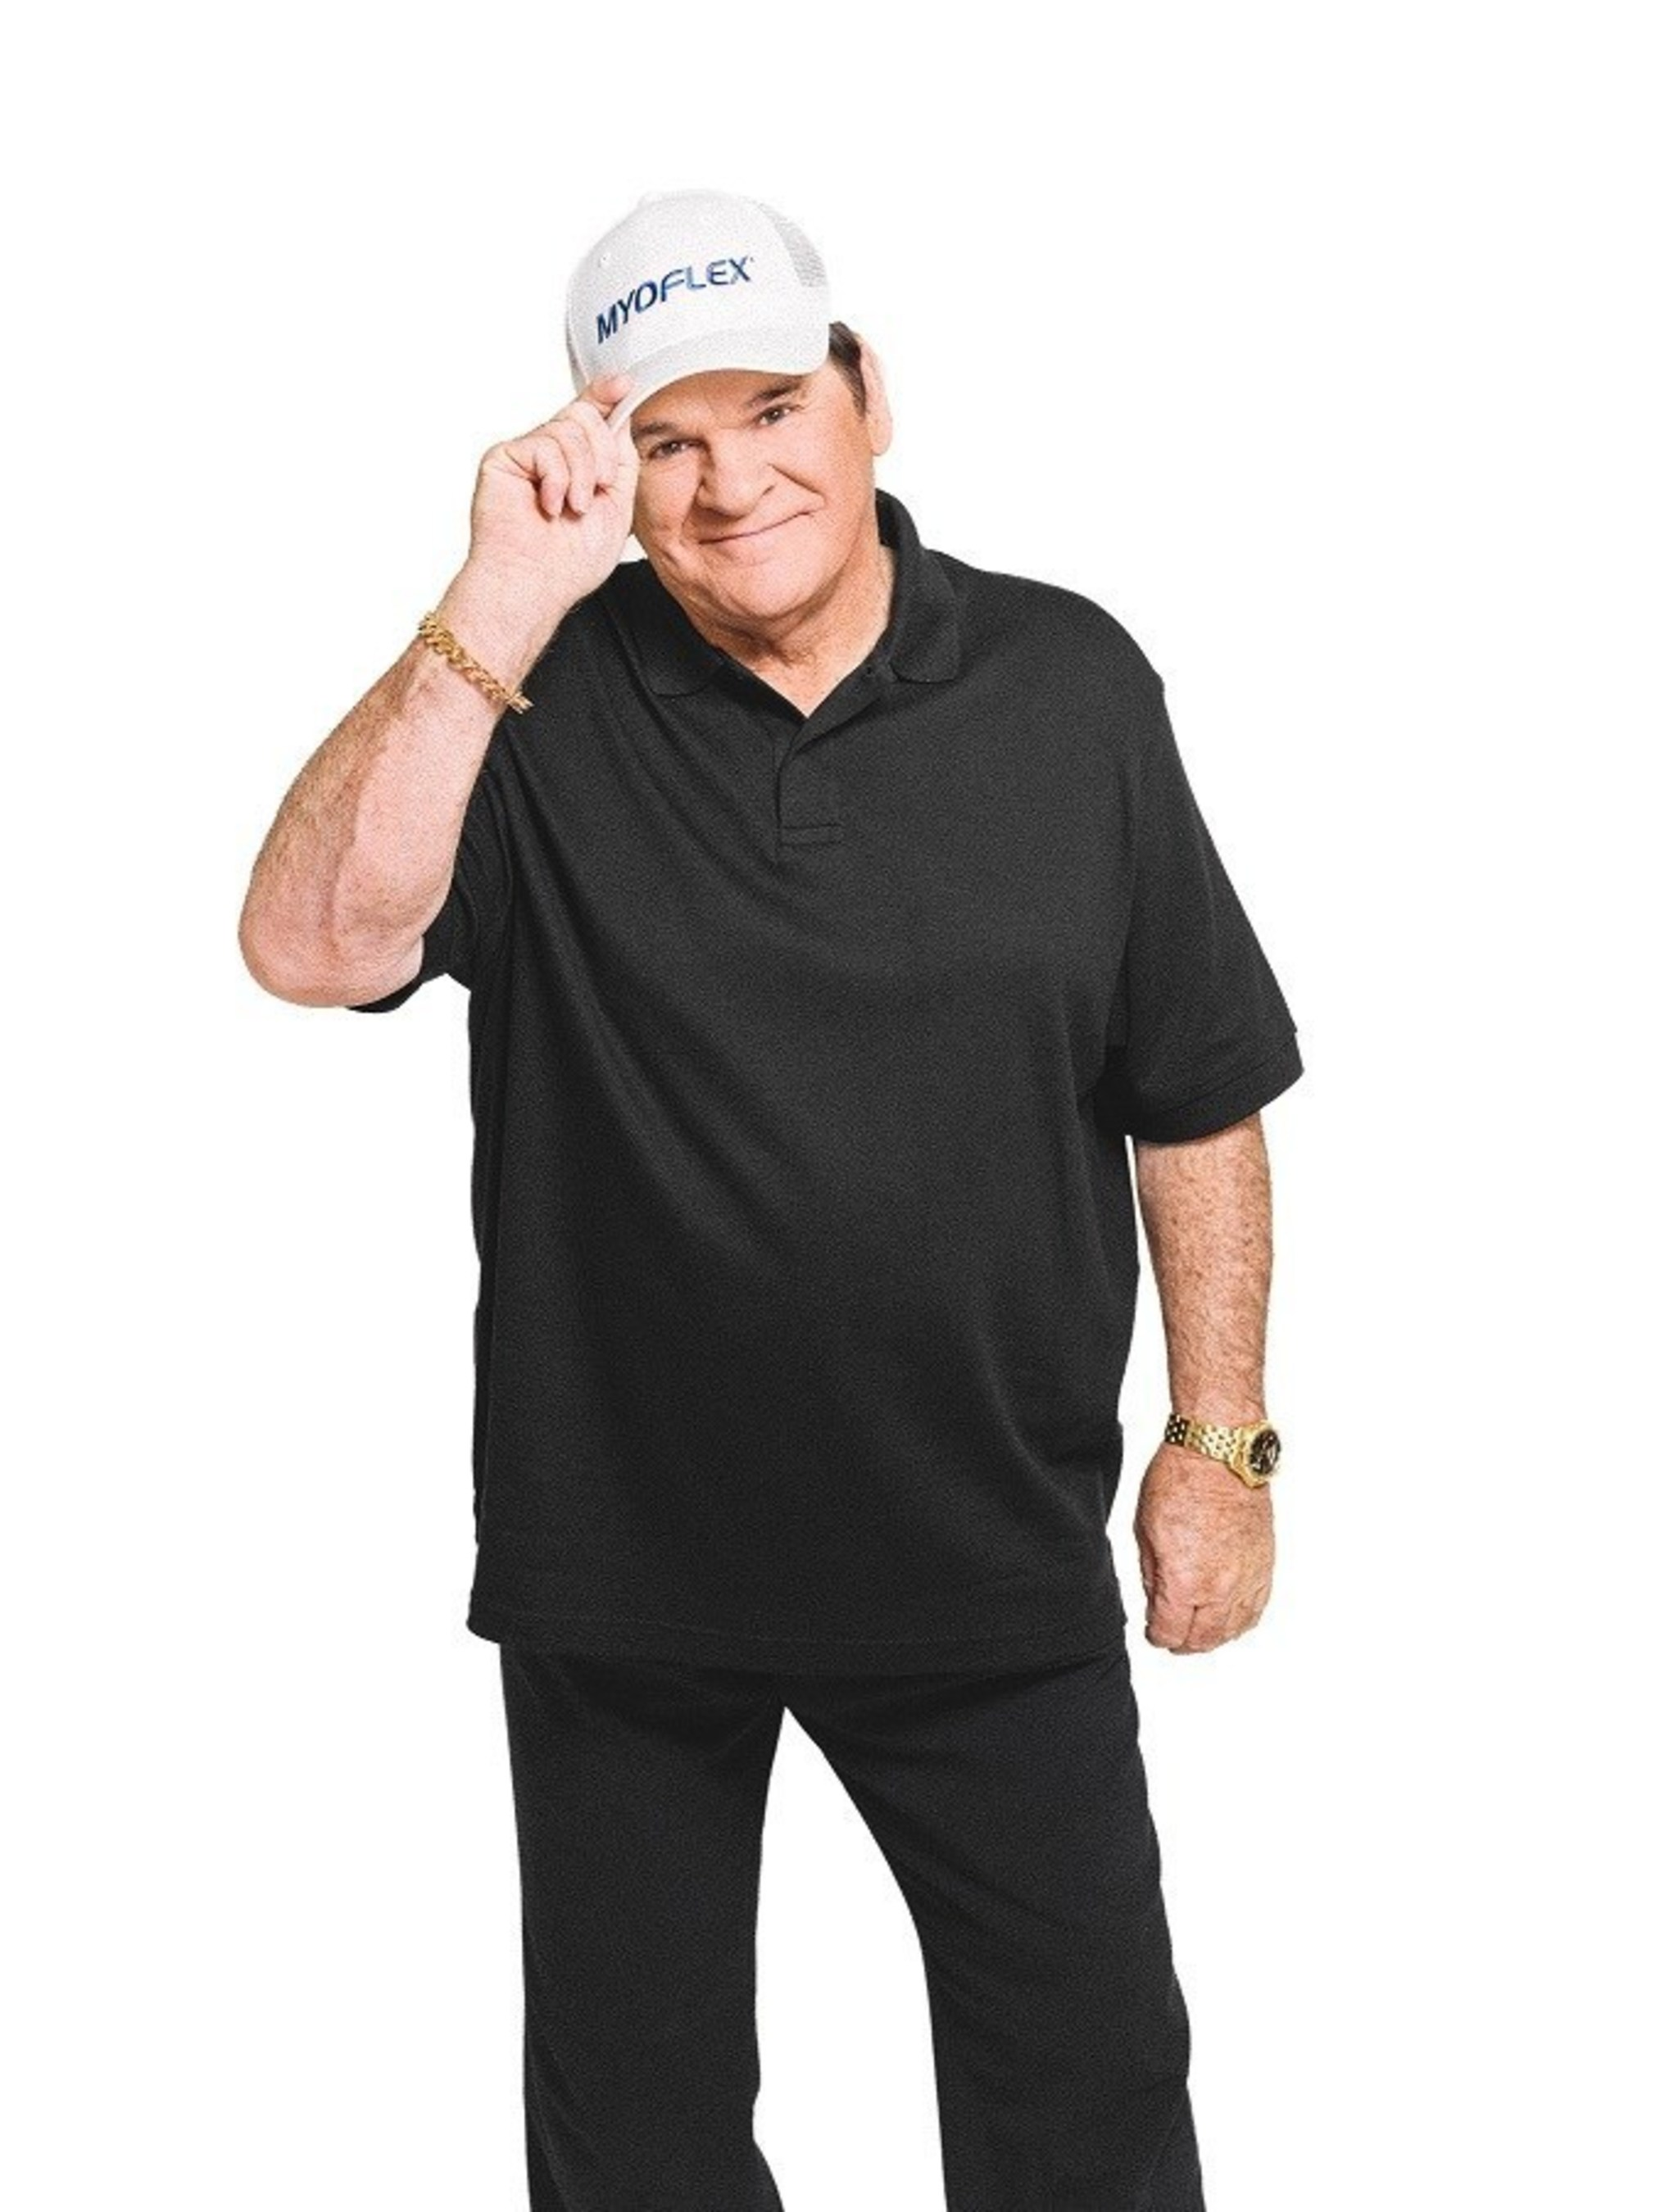 Baseball's all-time hits leader Pete Rose is the new spokesperson for Myoflex, a joint, muscle and arthritis pain reliever.